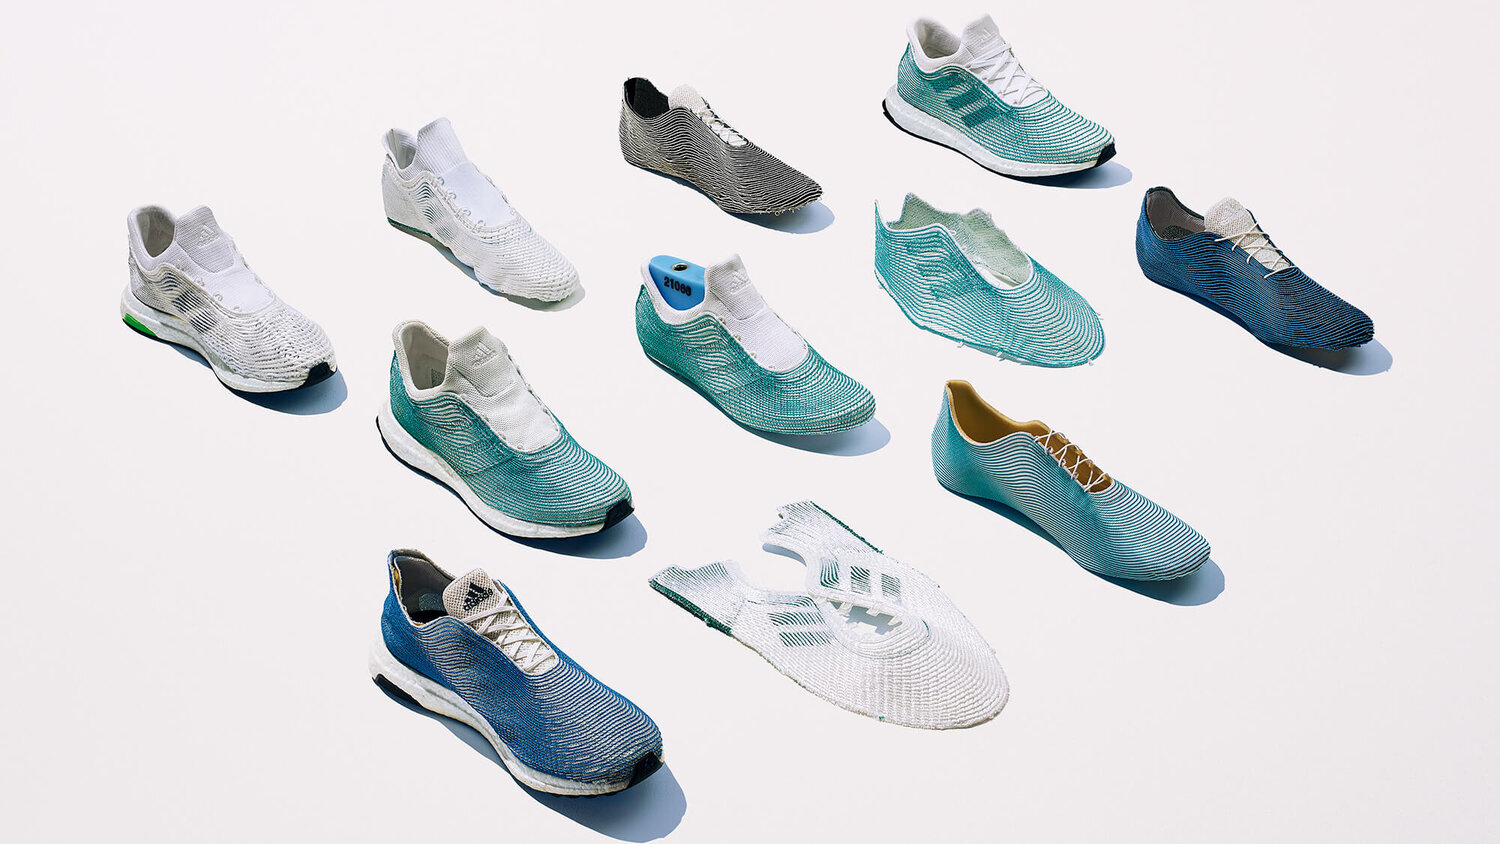 mecanismo peine Parlamento  ADIDAS X PARLEY — PARLEY